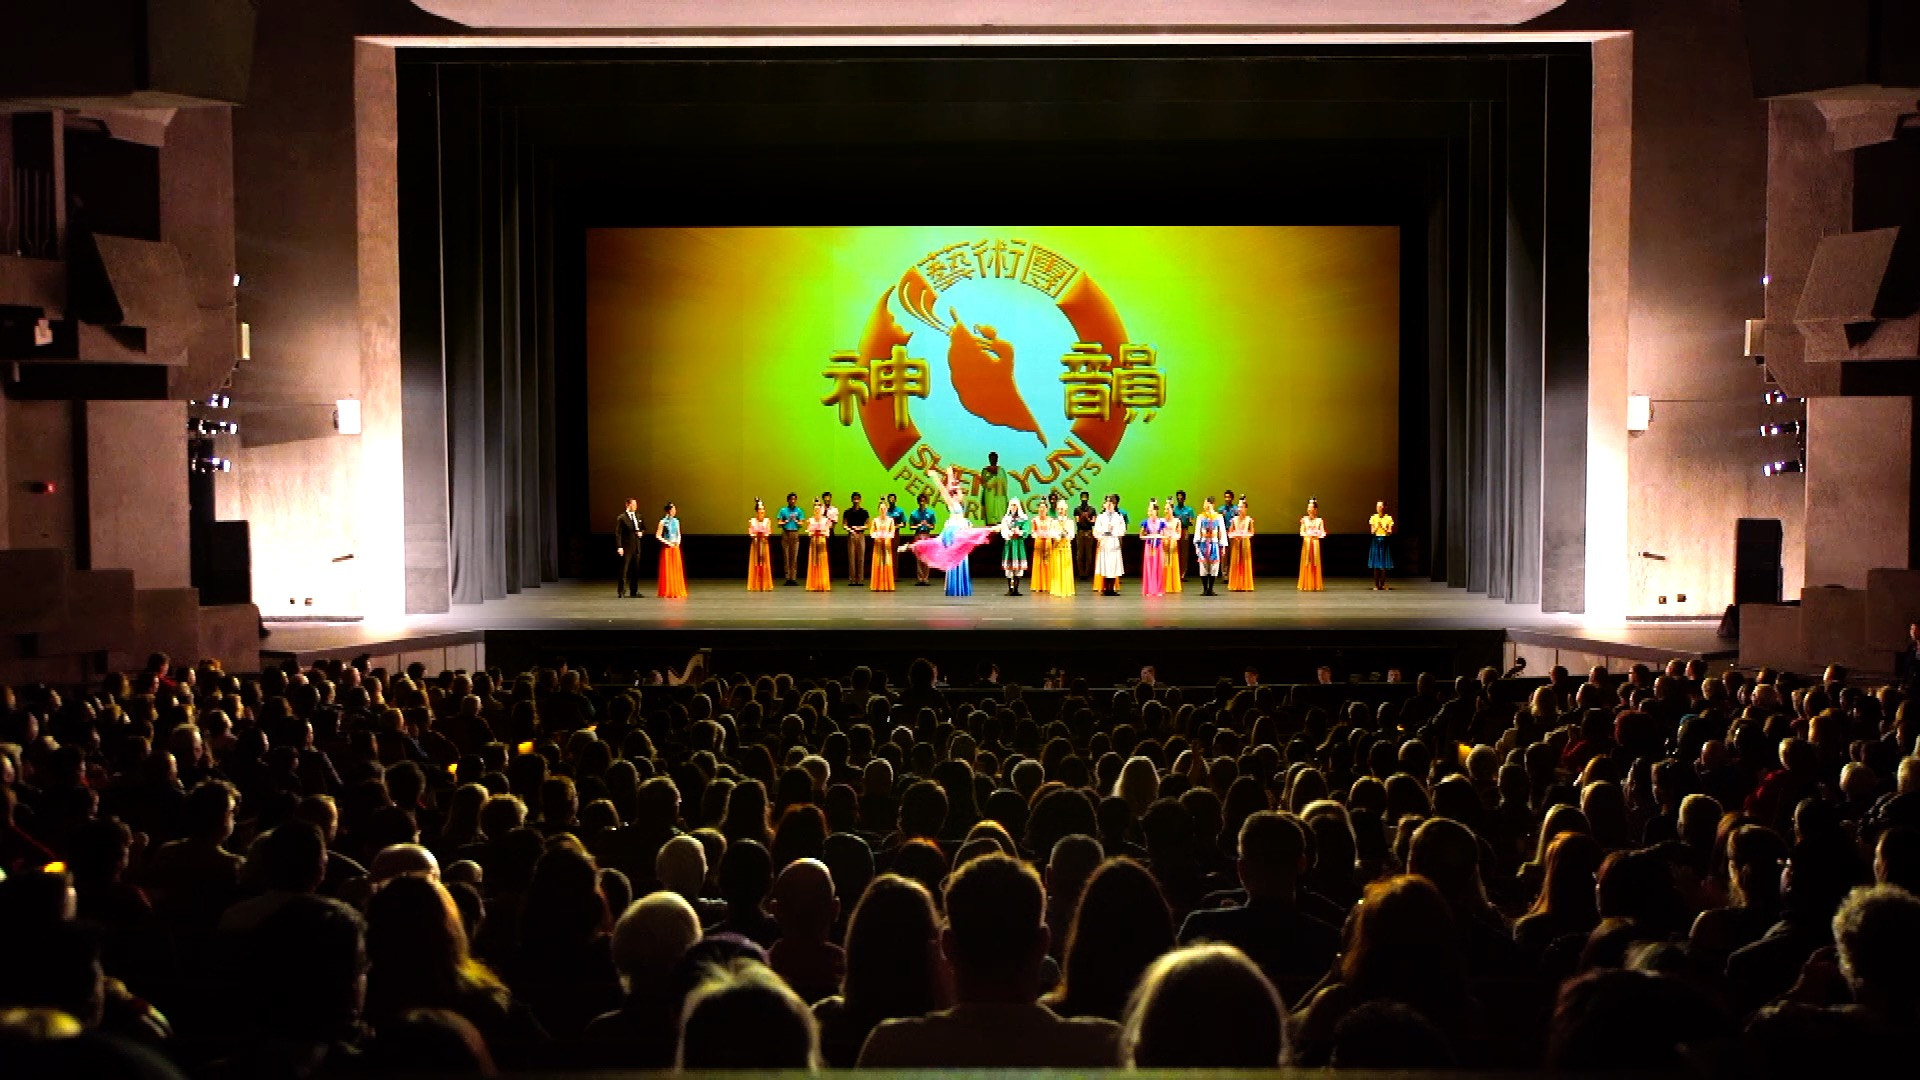 Shen Yun Performing Arts Starts Its 2020 Season World Tour in the US